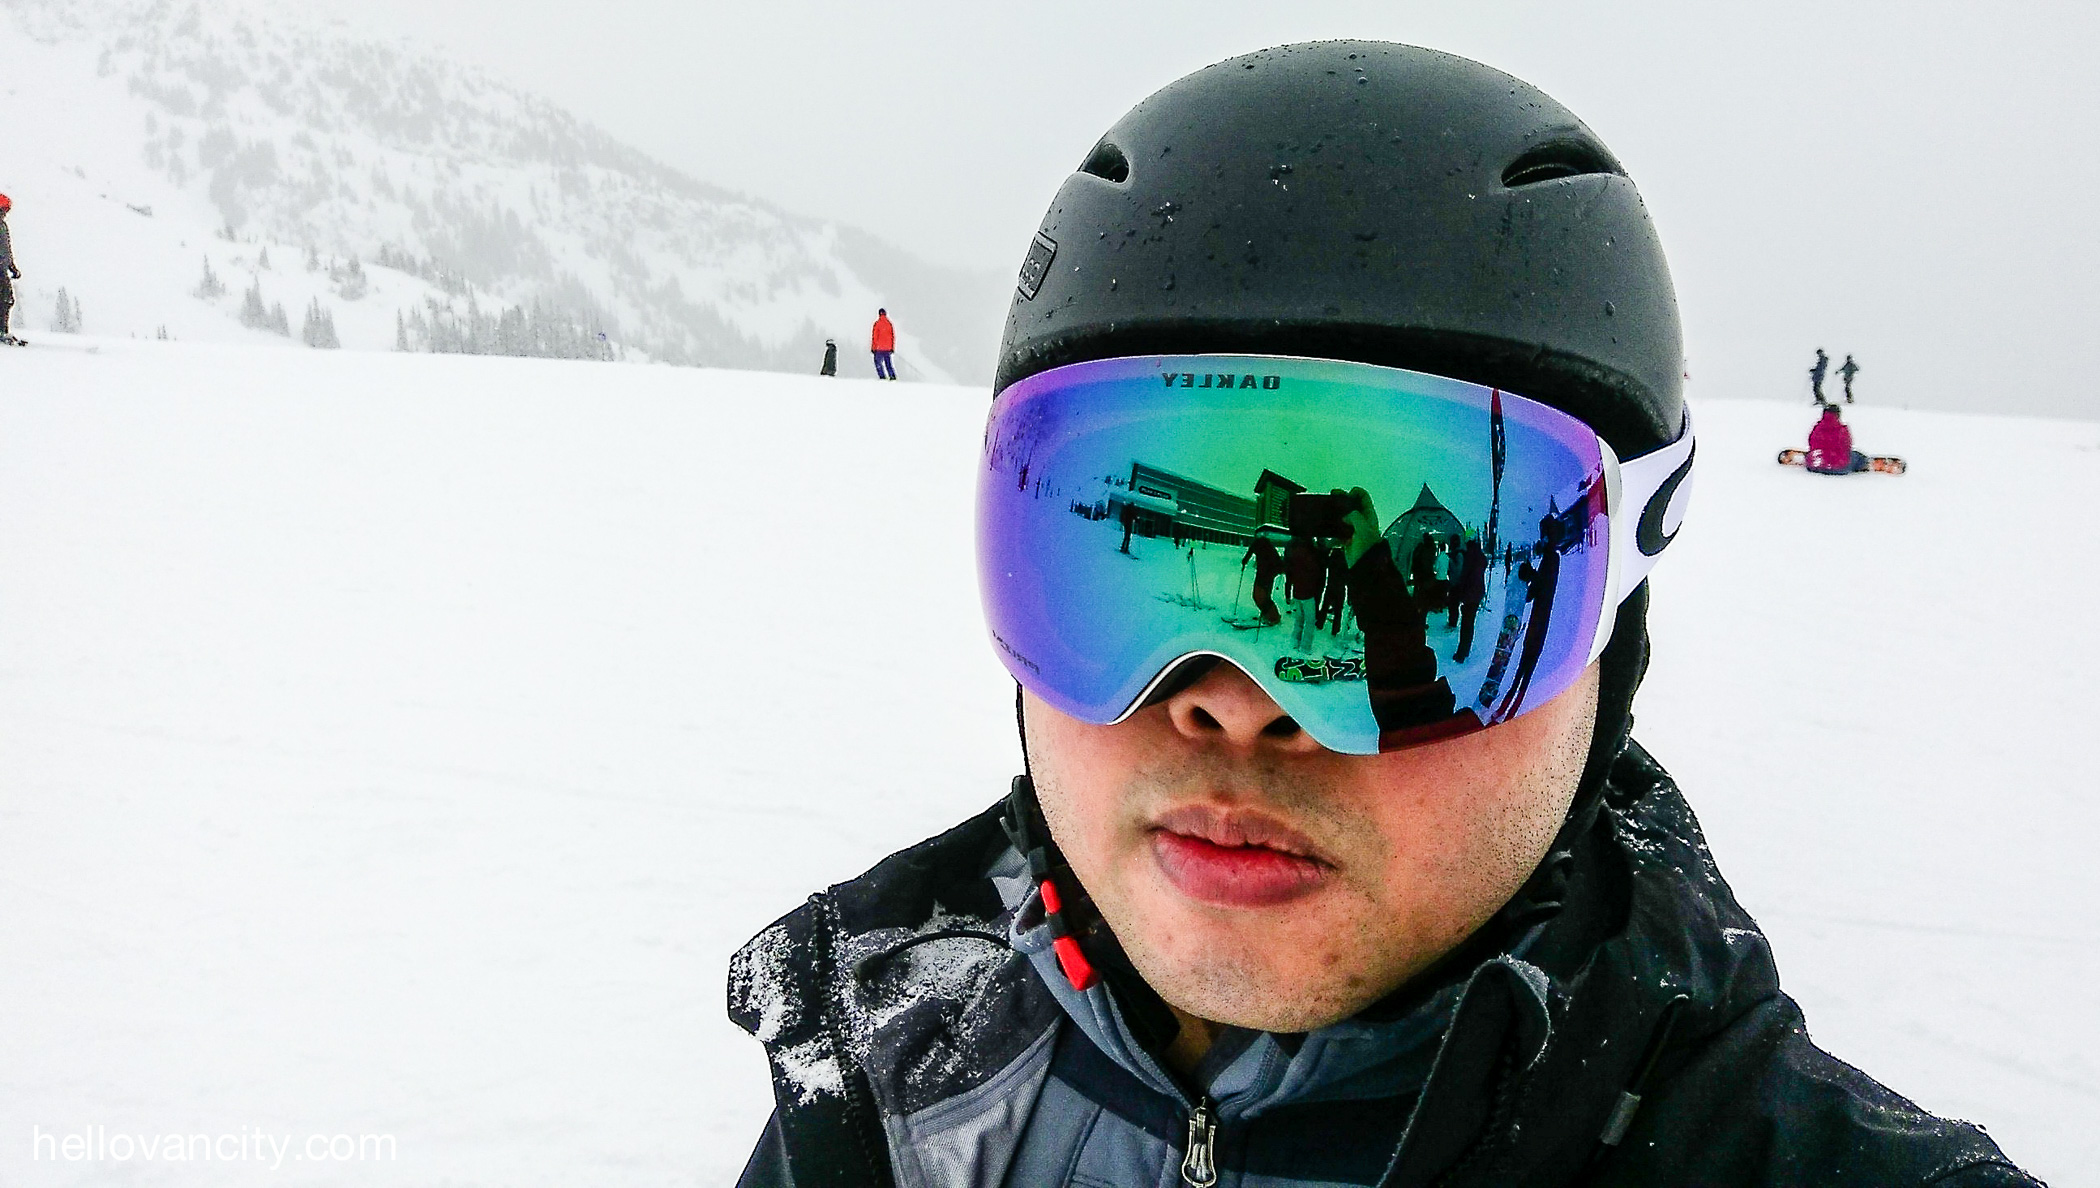 oakley prizm goggle lenses  Review: Oakley Prizm Snow Goggles in Whistler - Hello Vancity